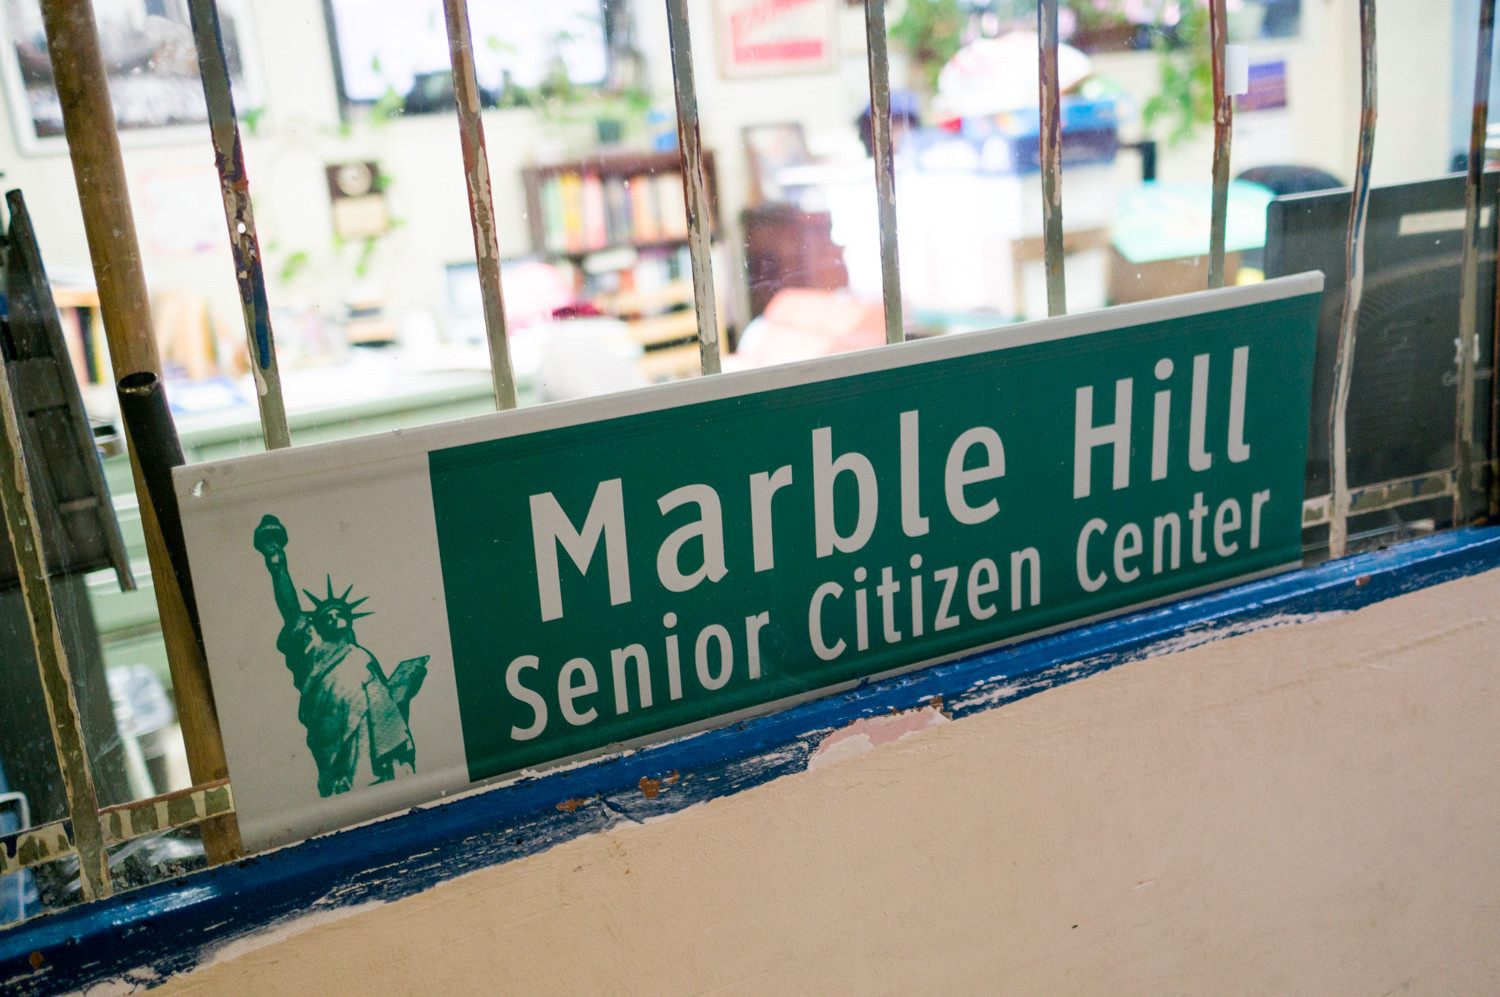 A recent report cited quality-of-life issues in New York City Housing Authority facilities, offering recommendations for solutions. Residents of NYCHA's Marble Hill development have mixed feelings about it.